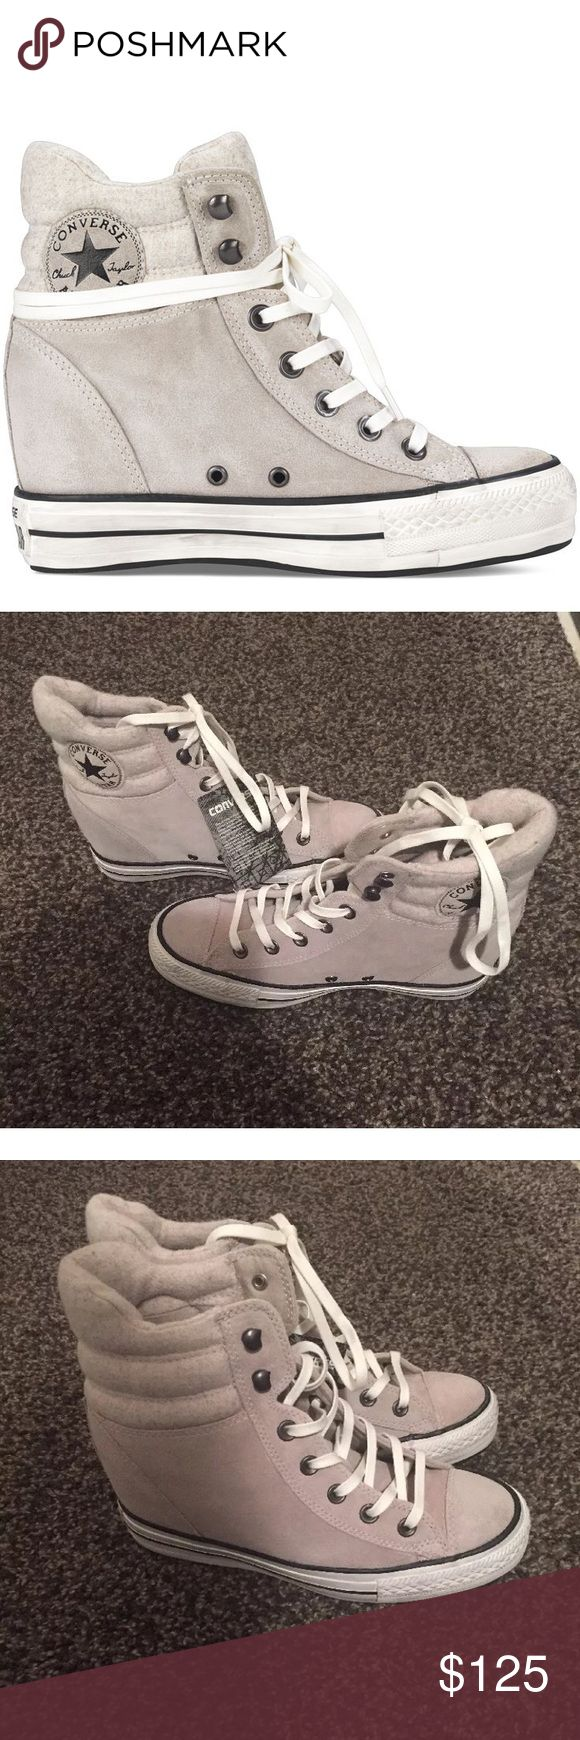 Converse wedge Chuck Taylor's gray suede Brand new converse wedge heel plush high tops.  The Chuck Taylor Hi sneakers with upward Platform has a hidden interior completely with suede ankle collar and tab top upholstered in fabric and quilted warm woolly. Converse Shoes